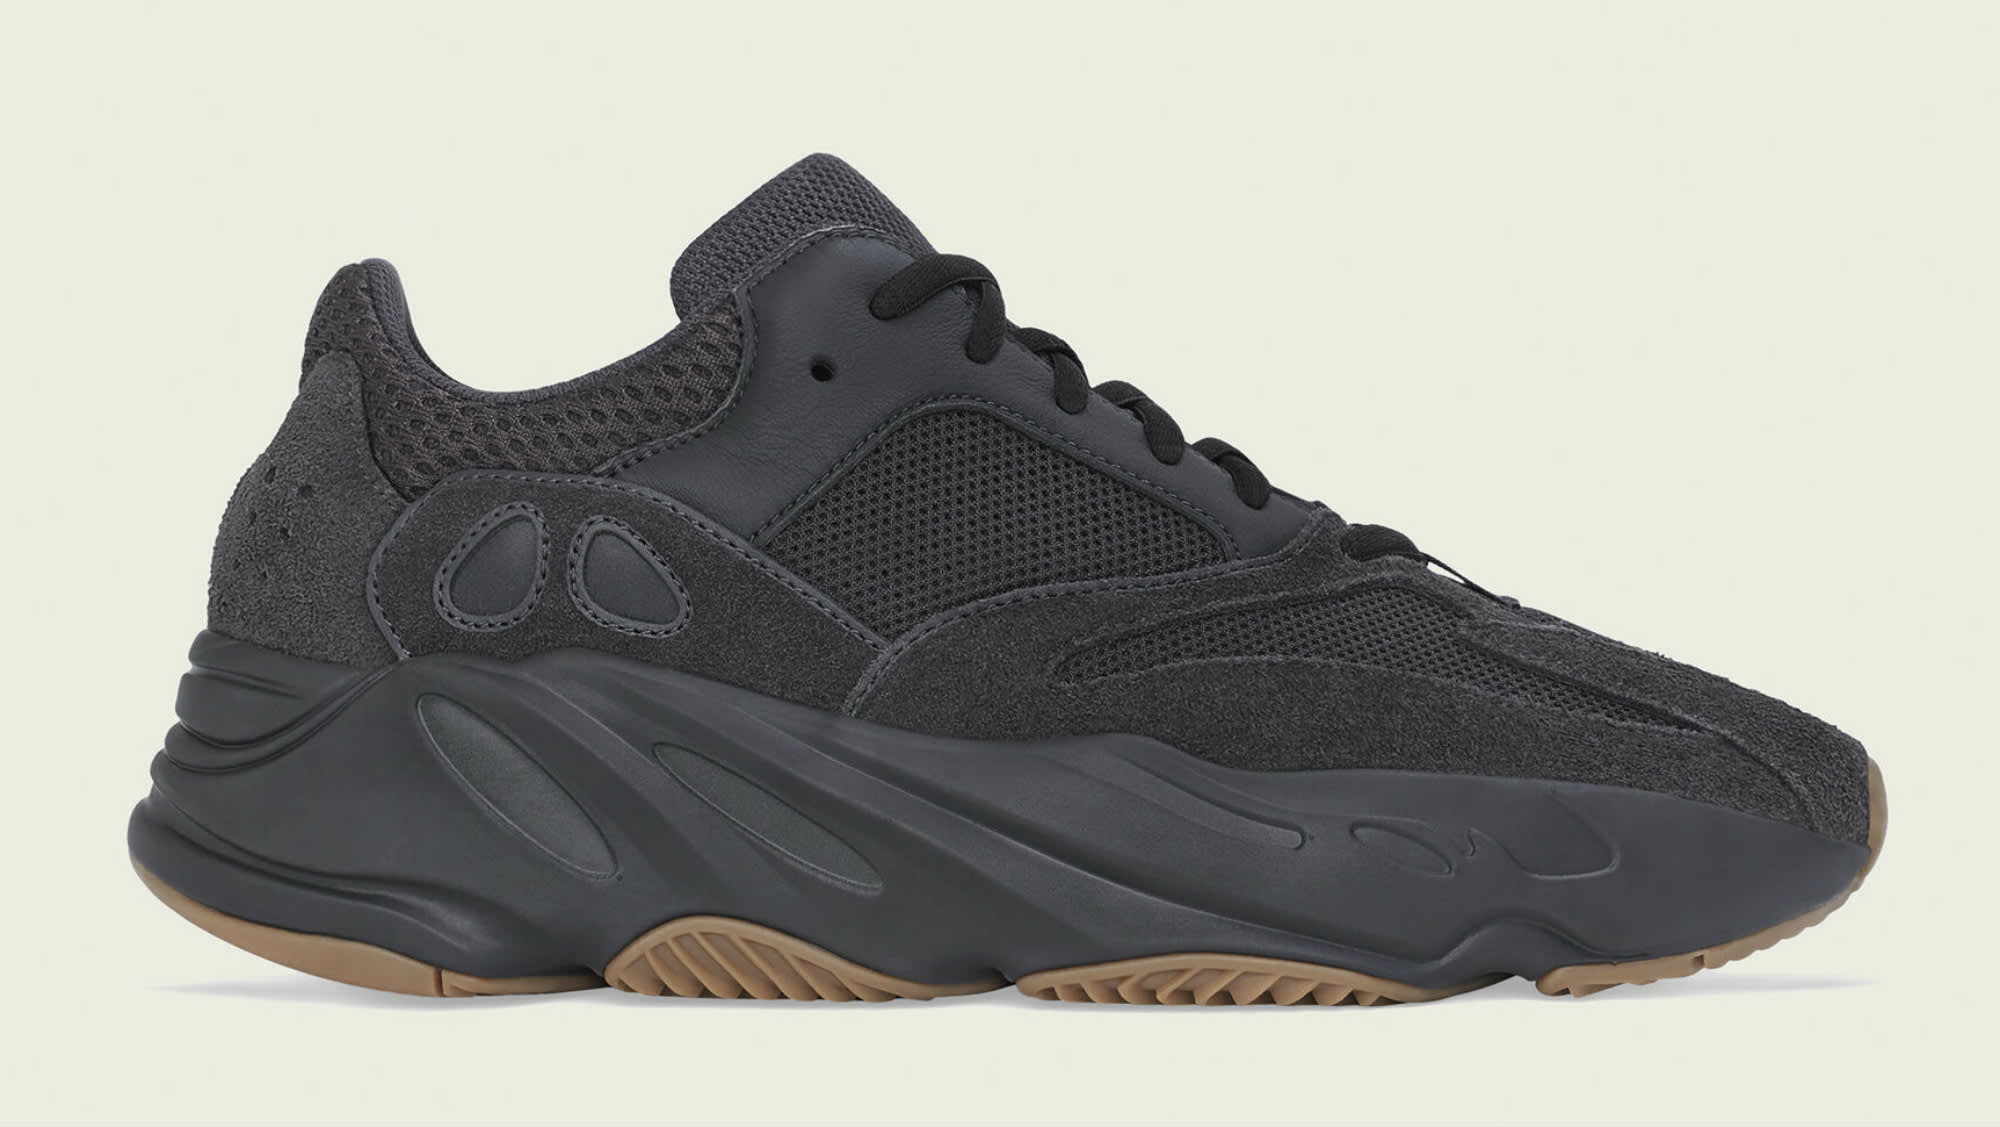 adidas-yeezy-boost-700-utility-black-fv5304-release-date